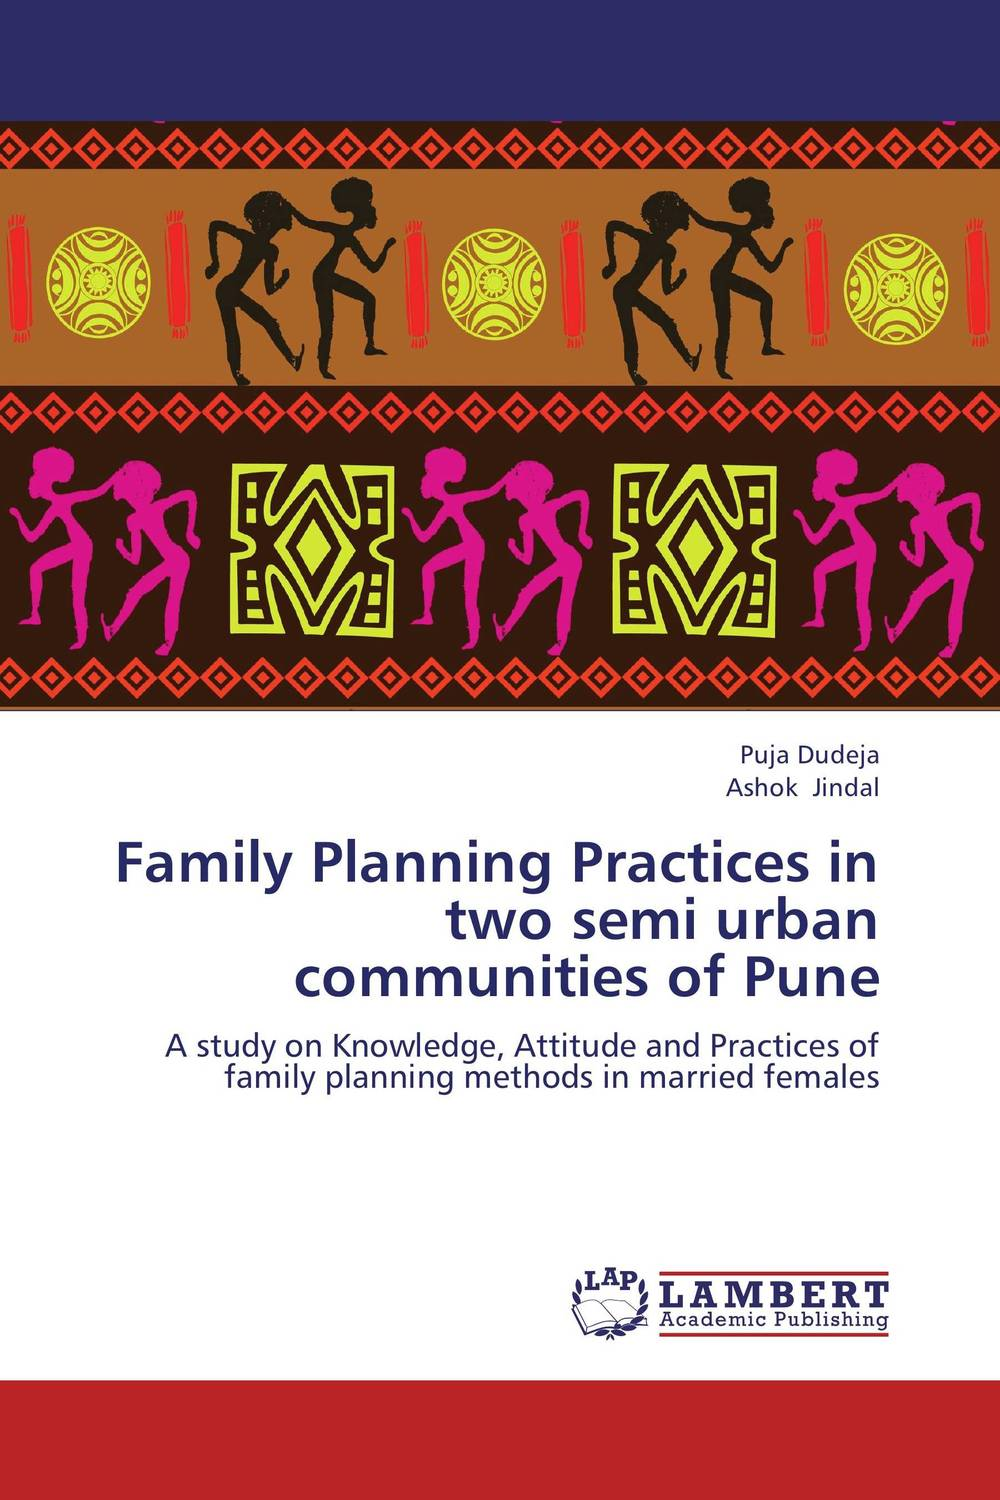 Family Planning Practices in two semi urban communities of Pune family planning practices in two semi